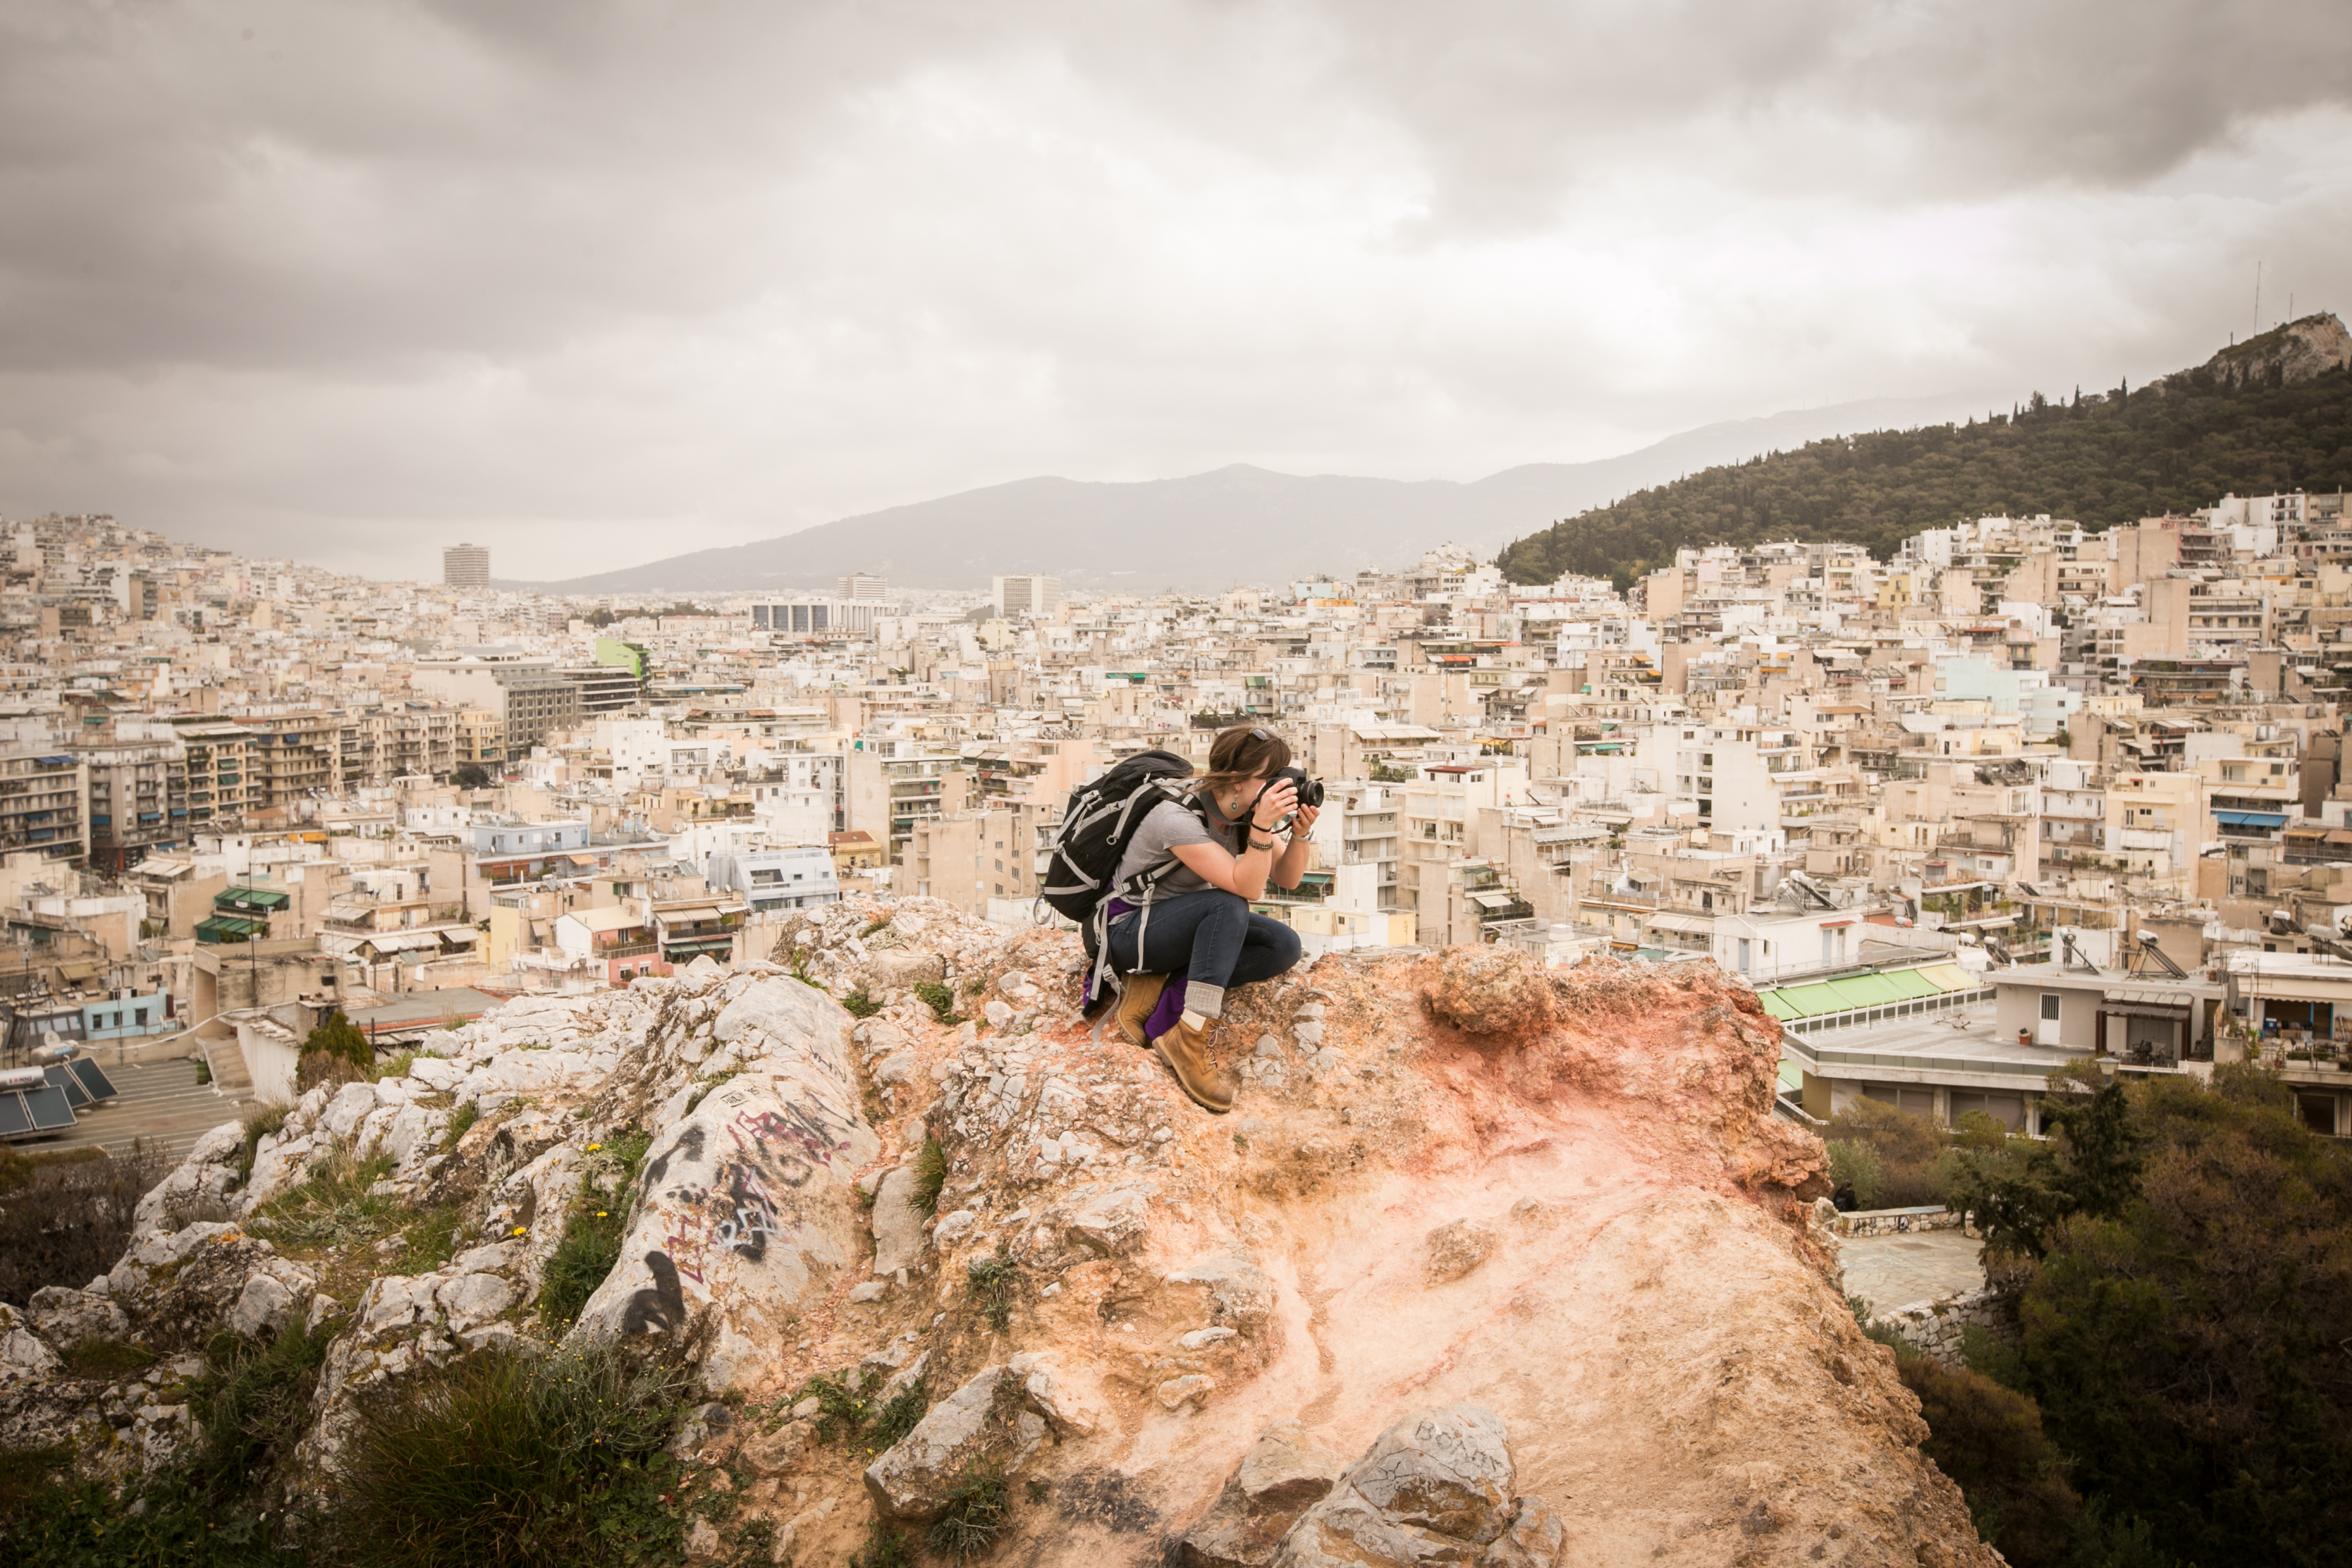 Claire Hutchinson photographs the Athens, Greece skyline.